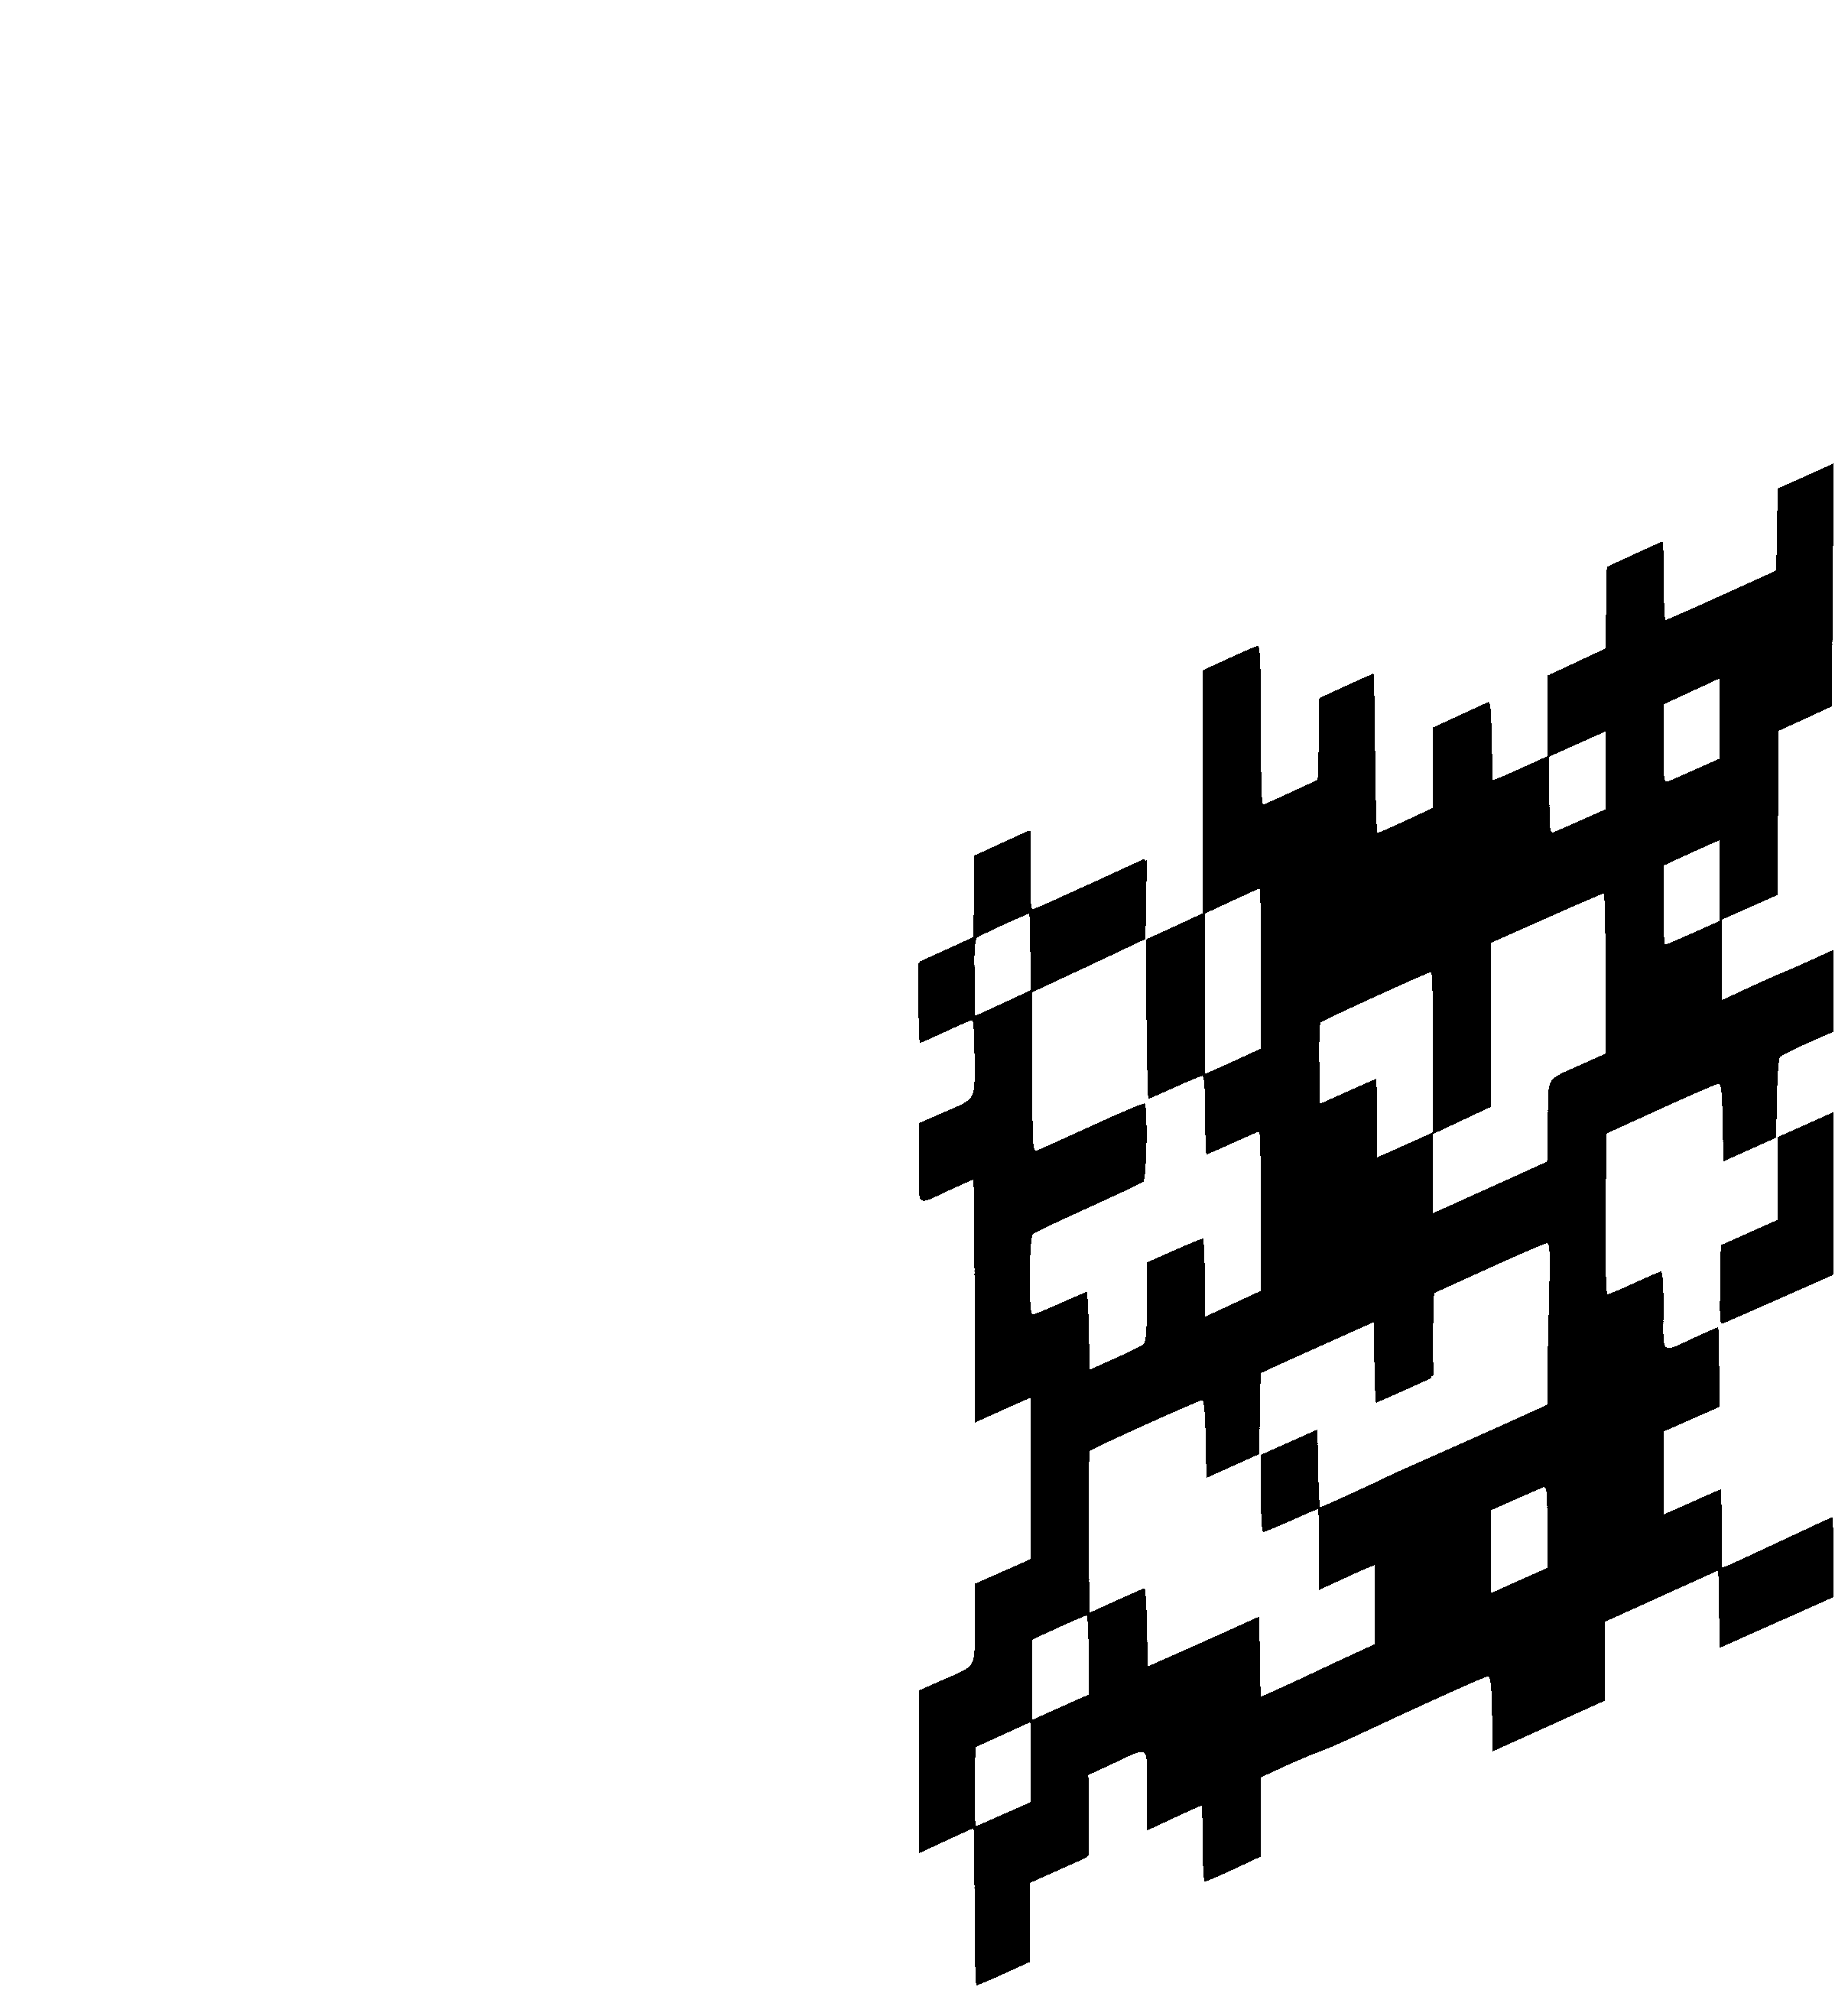 Png Svg Vector Freebie White Minecraft Logo Clipart Full Size Clipart 4206294 Pinclipart